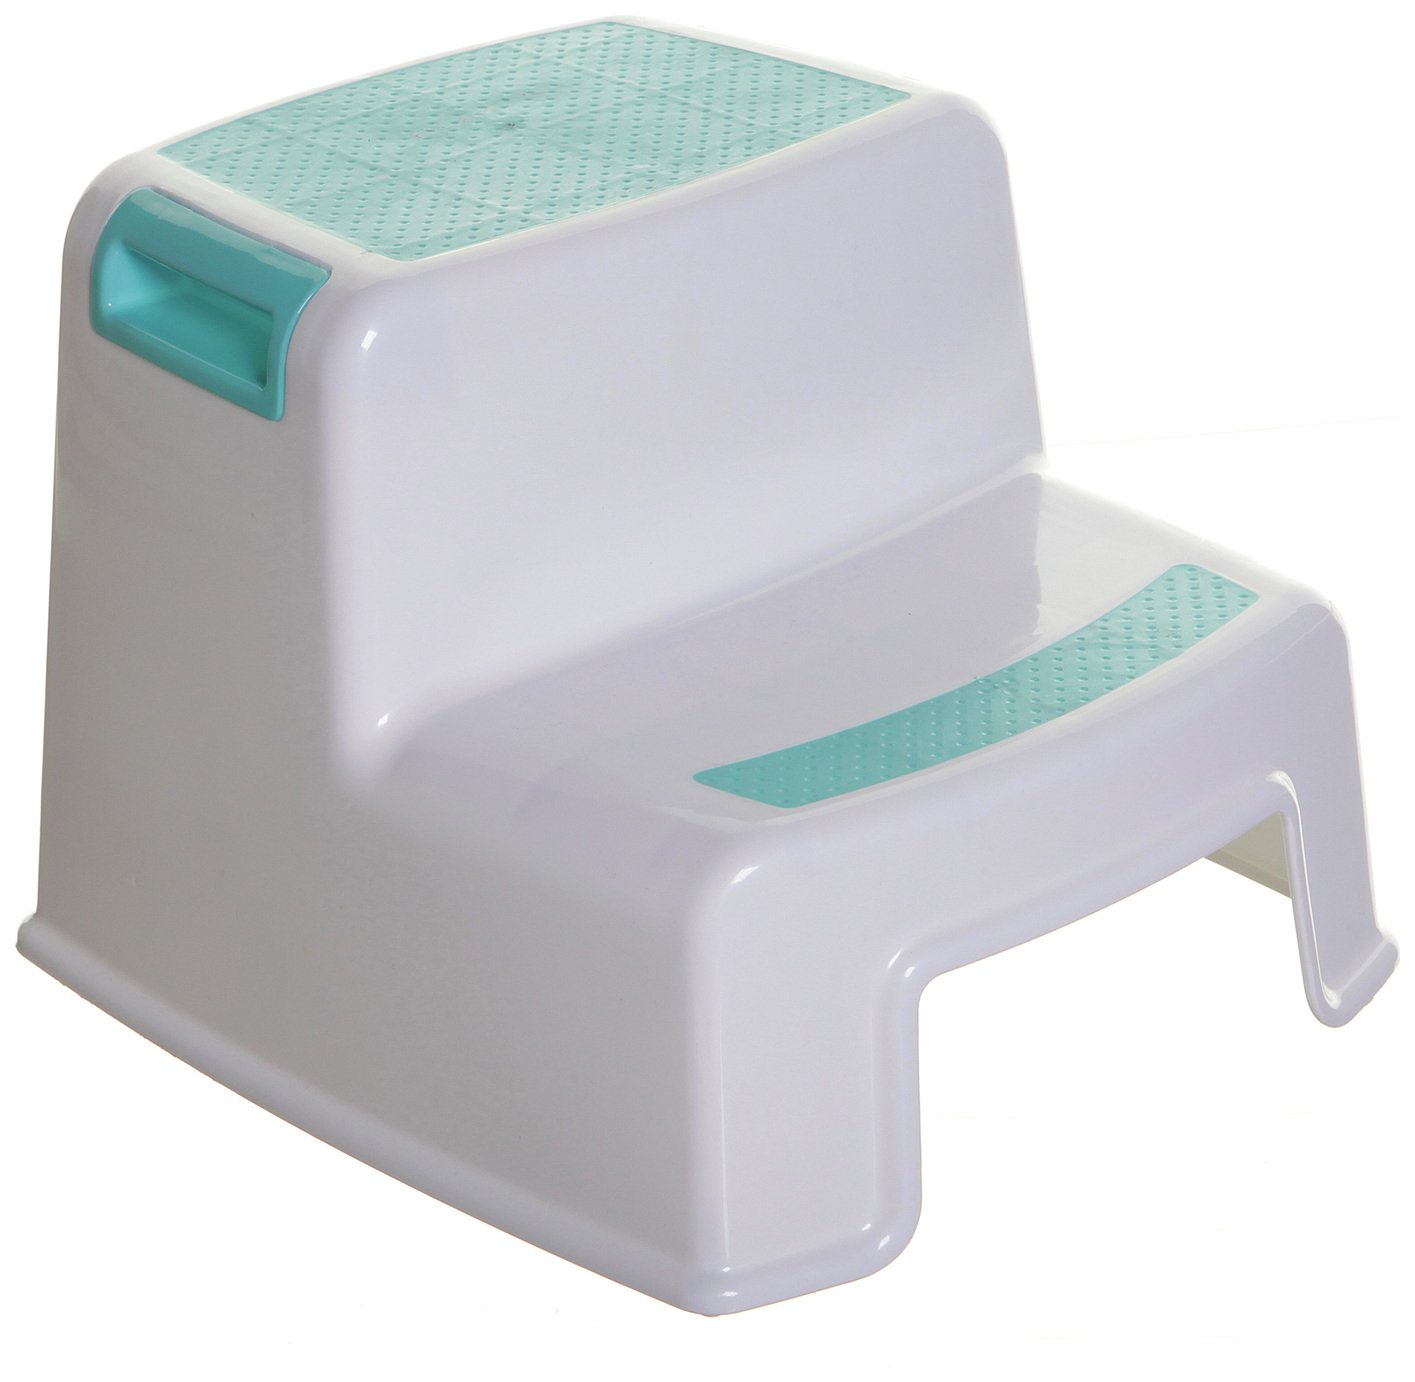 Buy Dreambaby 2 Height Step Stool - Aqua at Argos.co.uk - Your Online Shop for Step stools Potty and toilet training Bathing and changing ...  sc 1 st  Argos & Buy Dreambaby 2 Height Step Stool - Aqua at Argos.co.uk - Your ... islam-shia.org